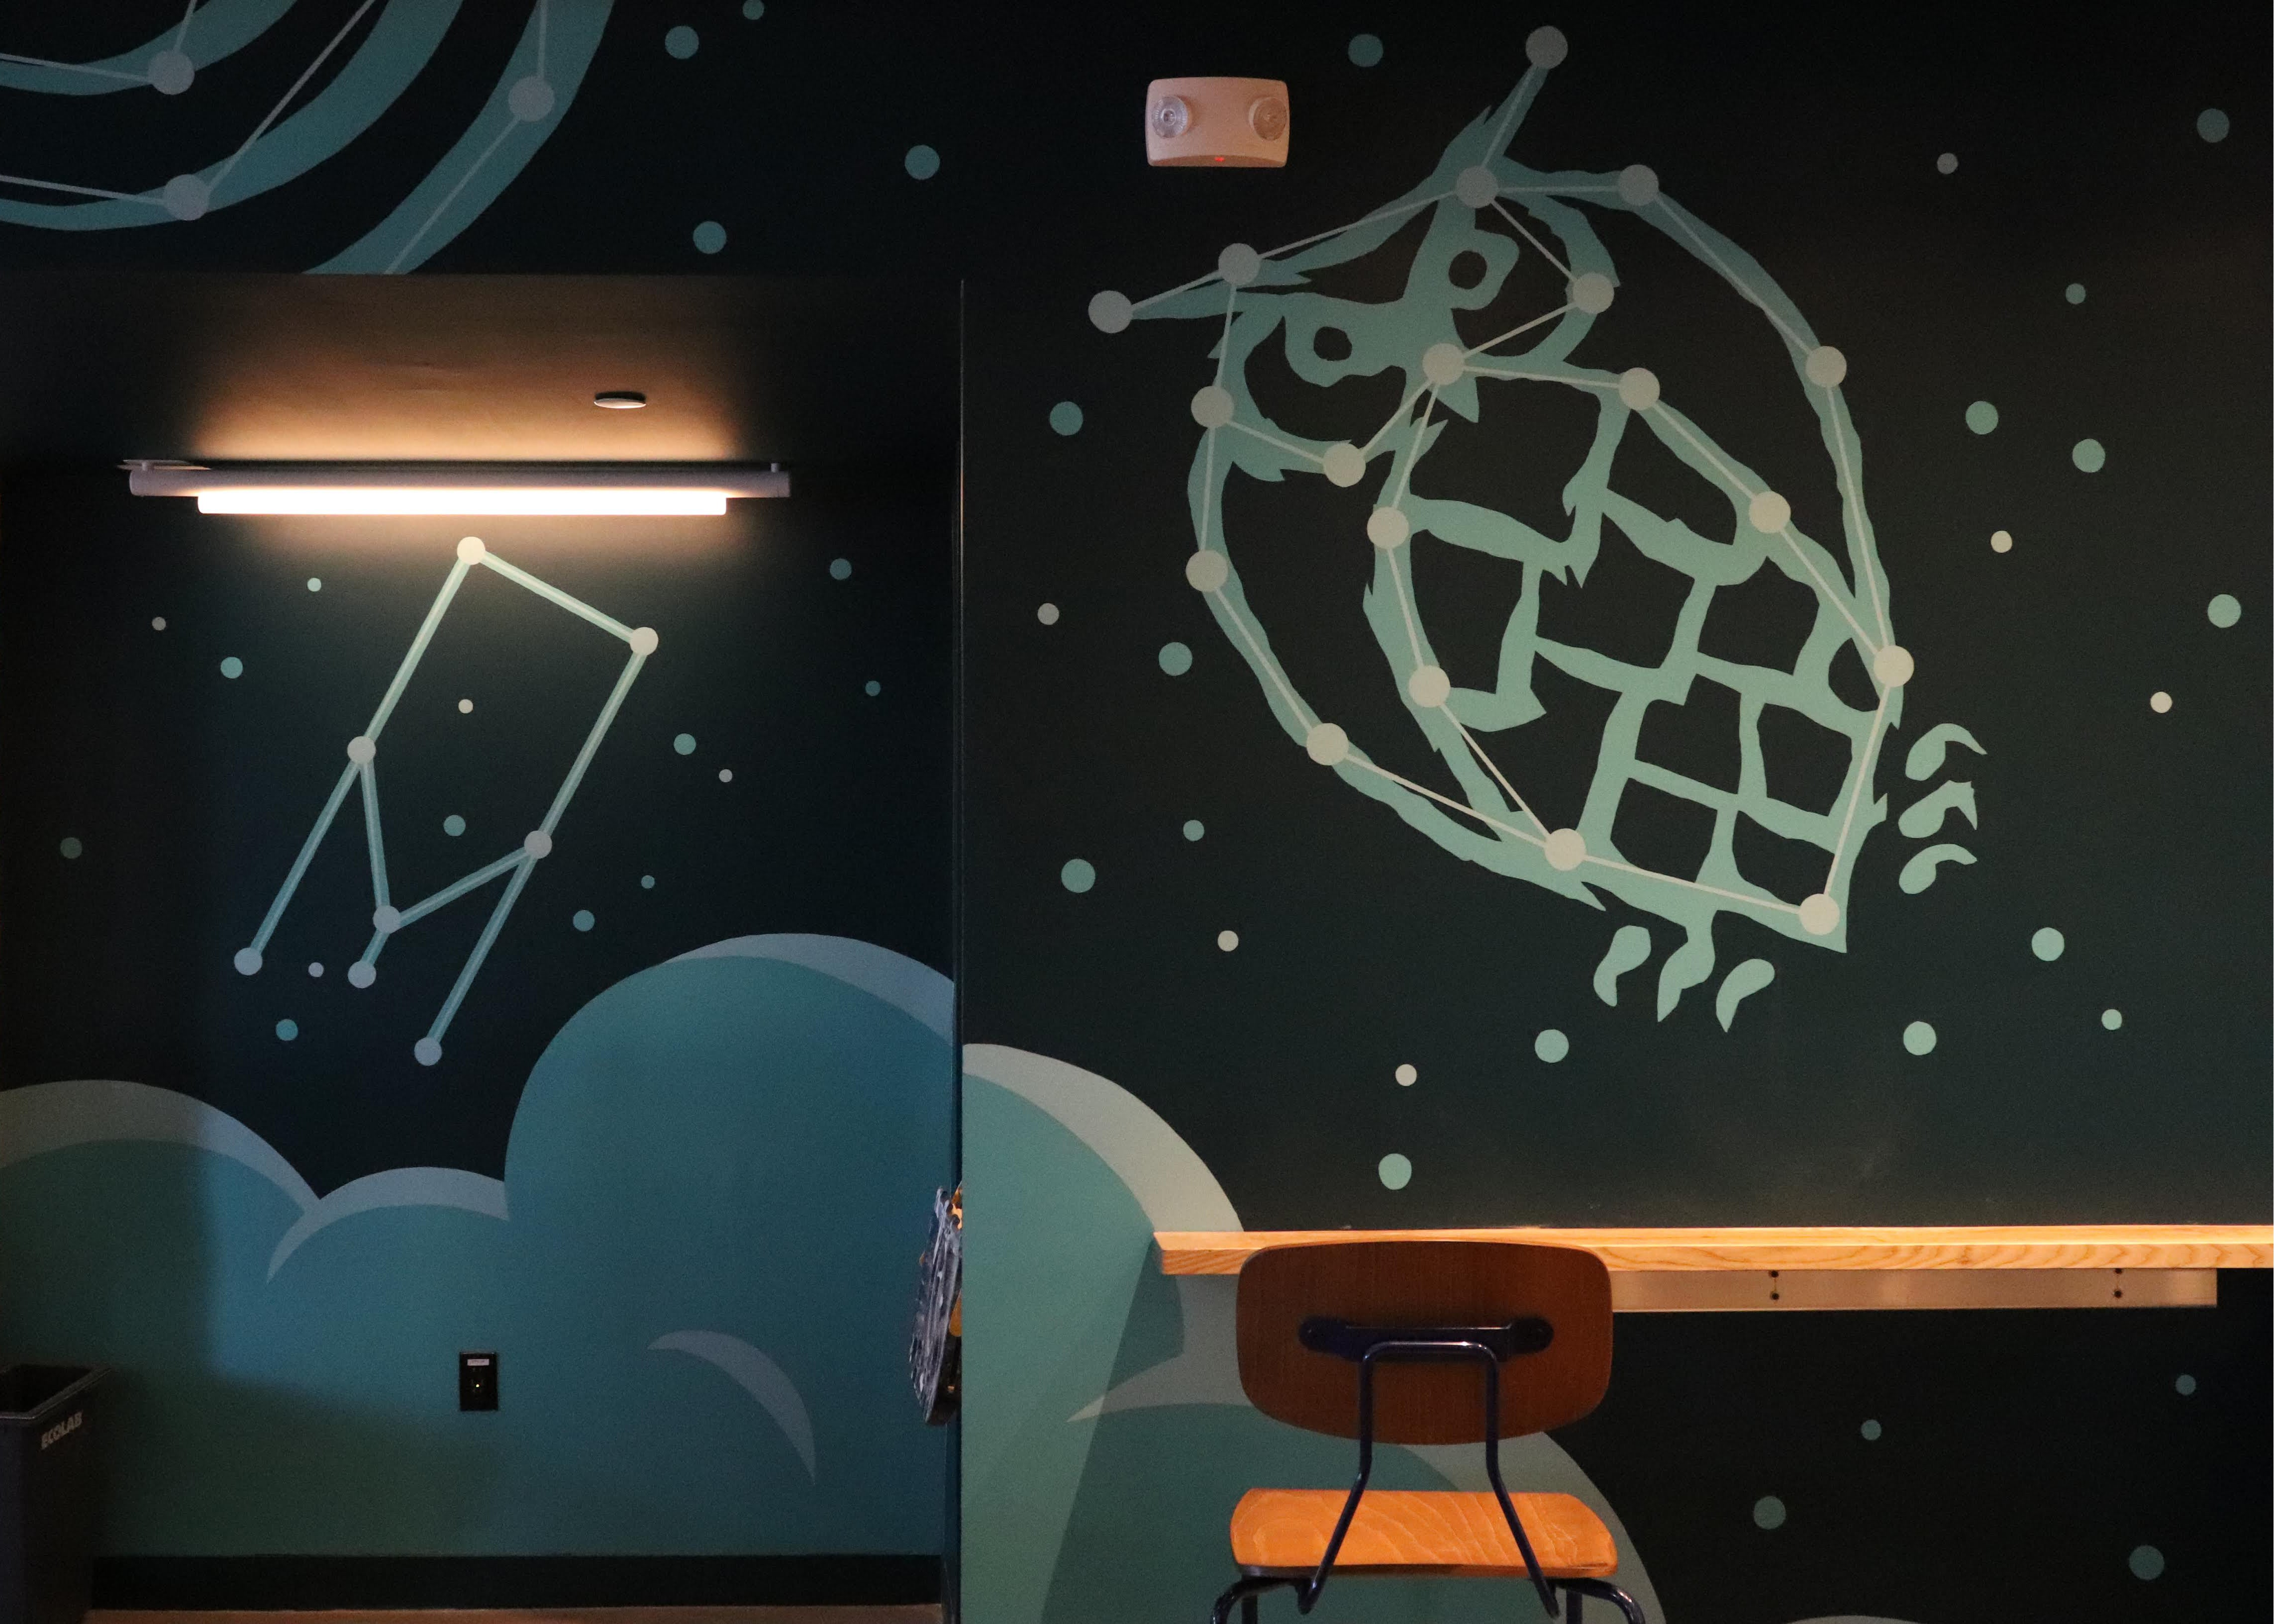 A mural painted by James Weinberg